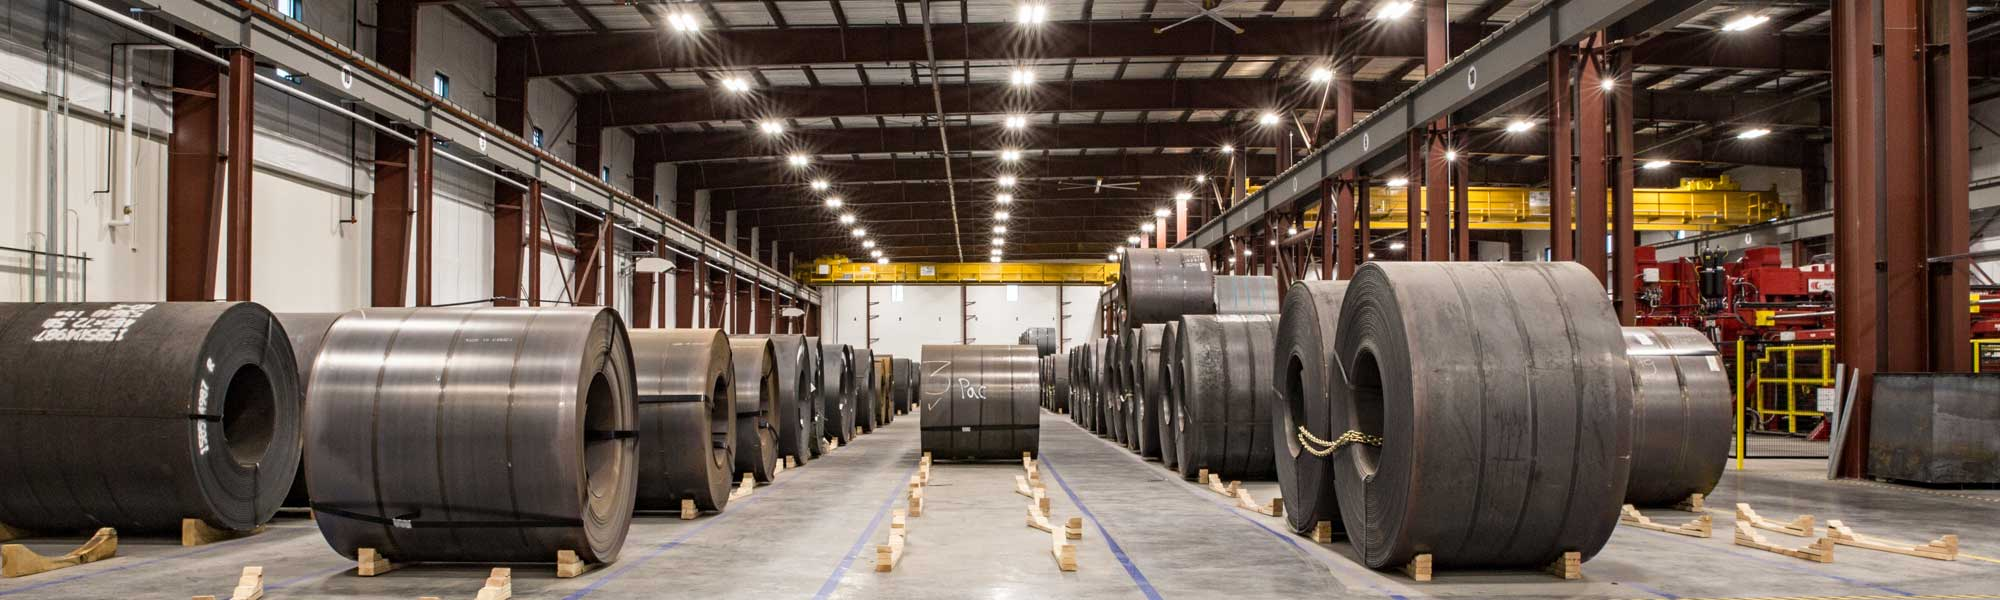 steel coils in warehouse